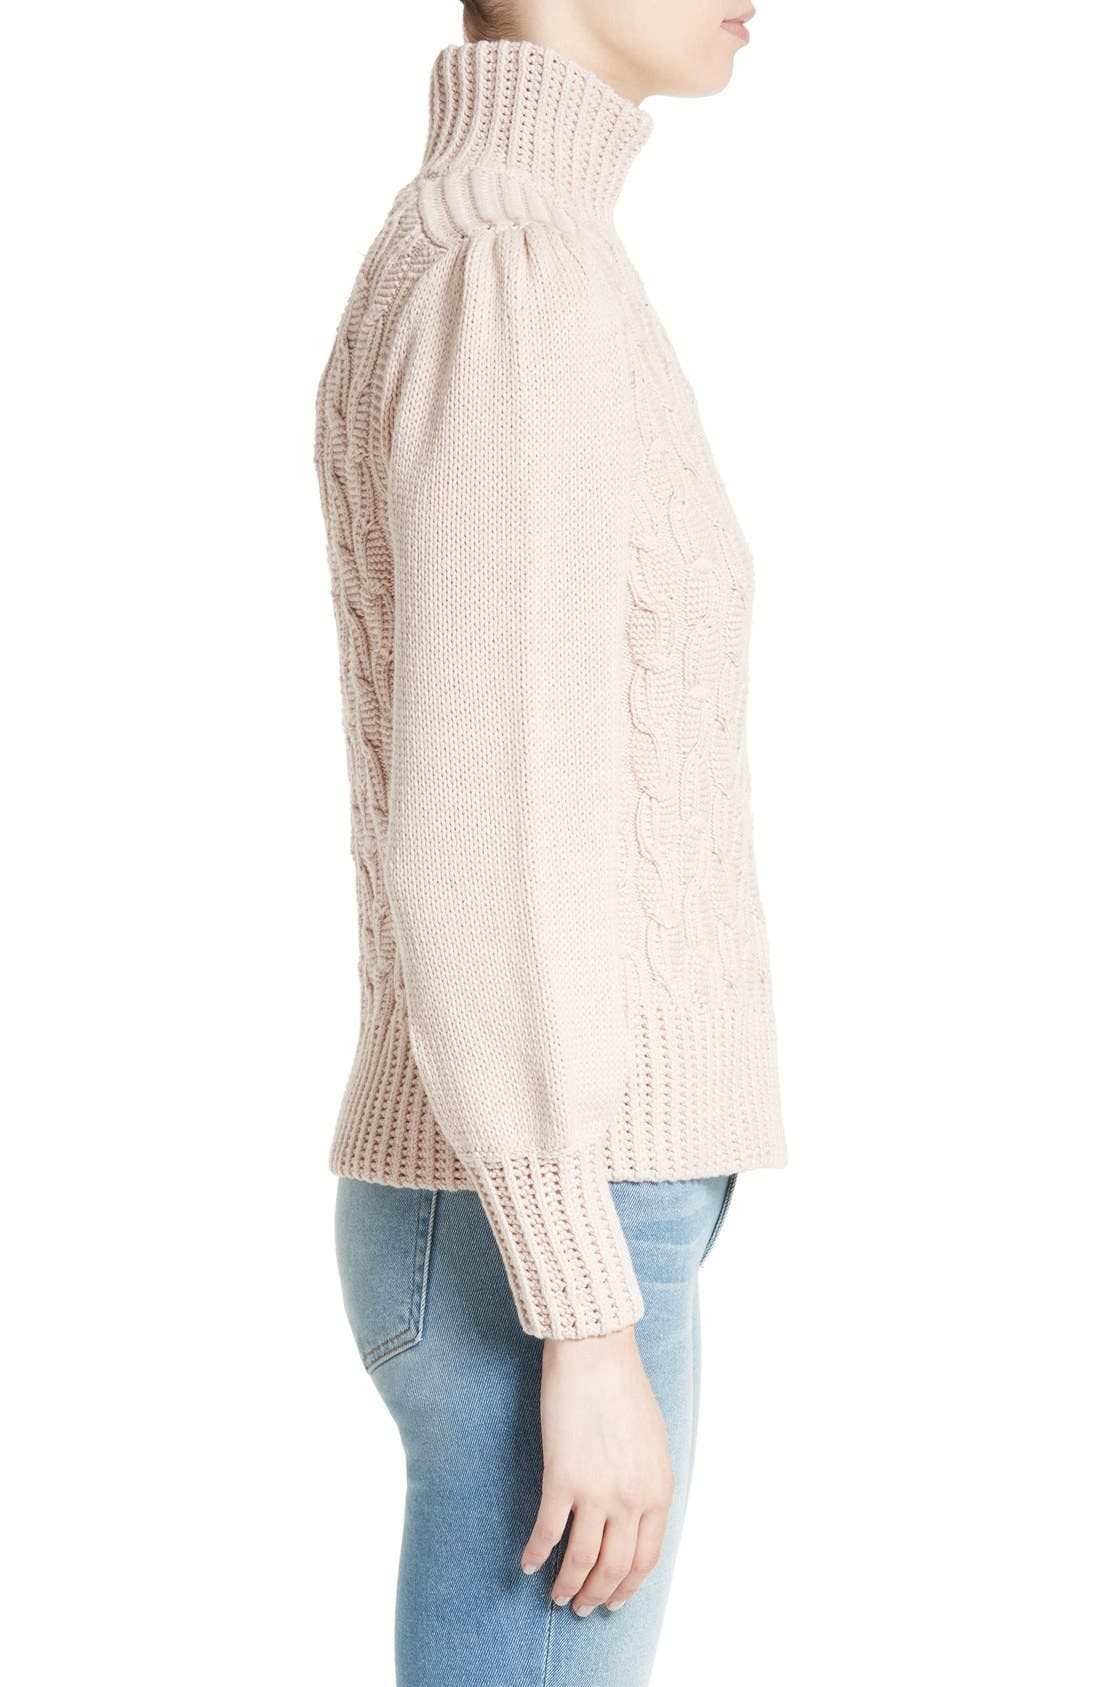 Alternate Image 3  - La Vie Rebecca Taylor Cable Knit Turtleneck Sweater